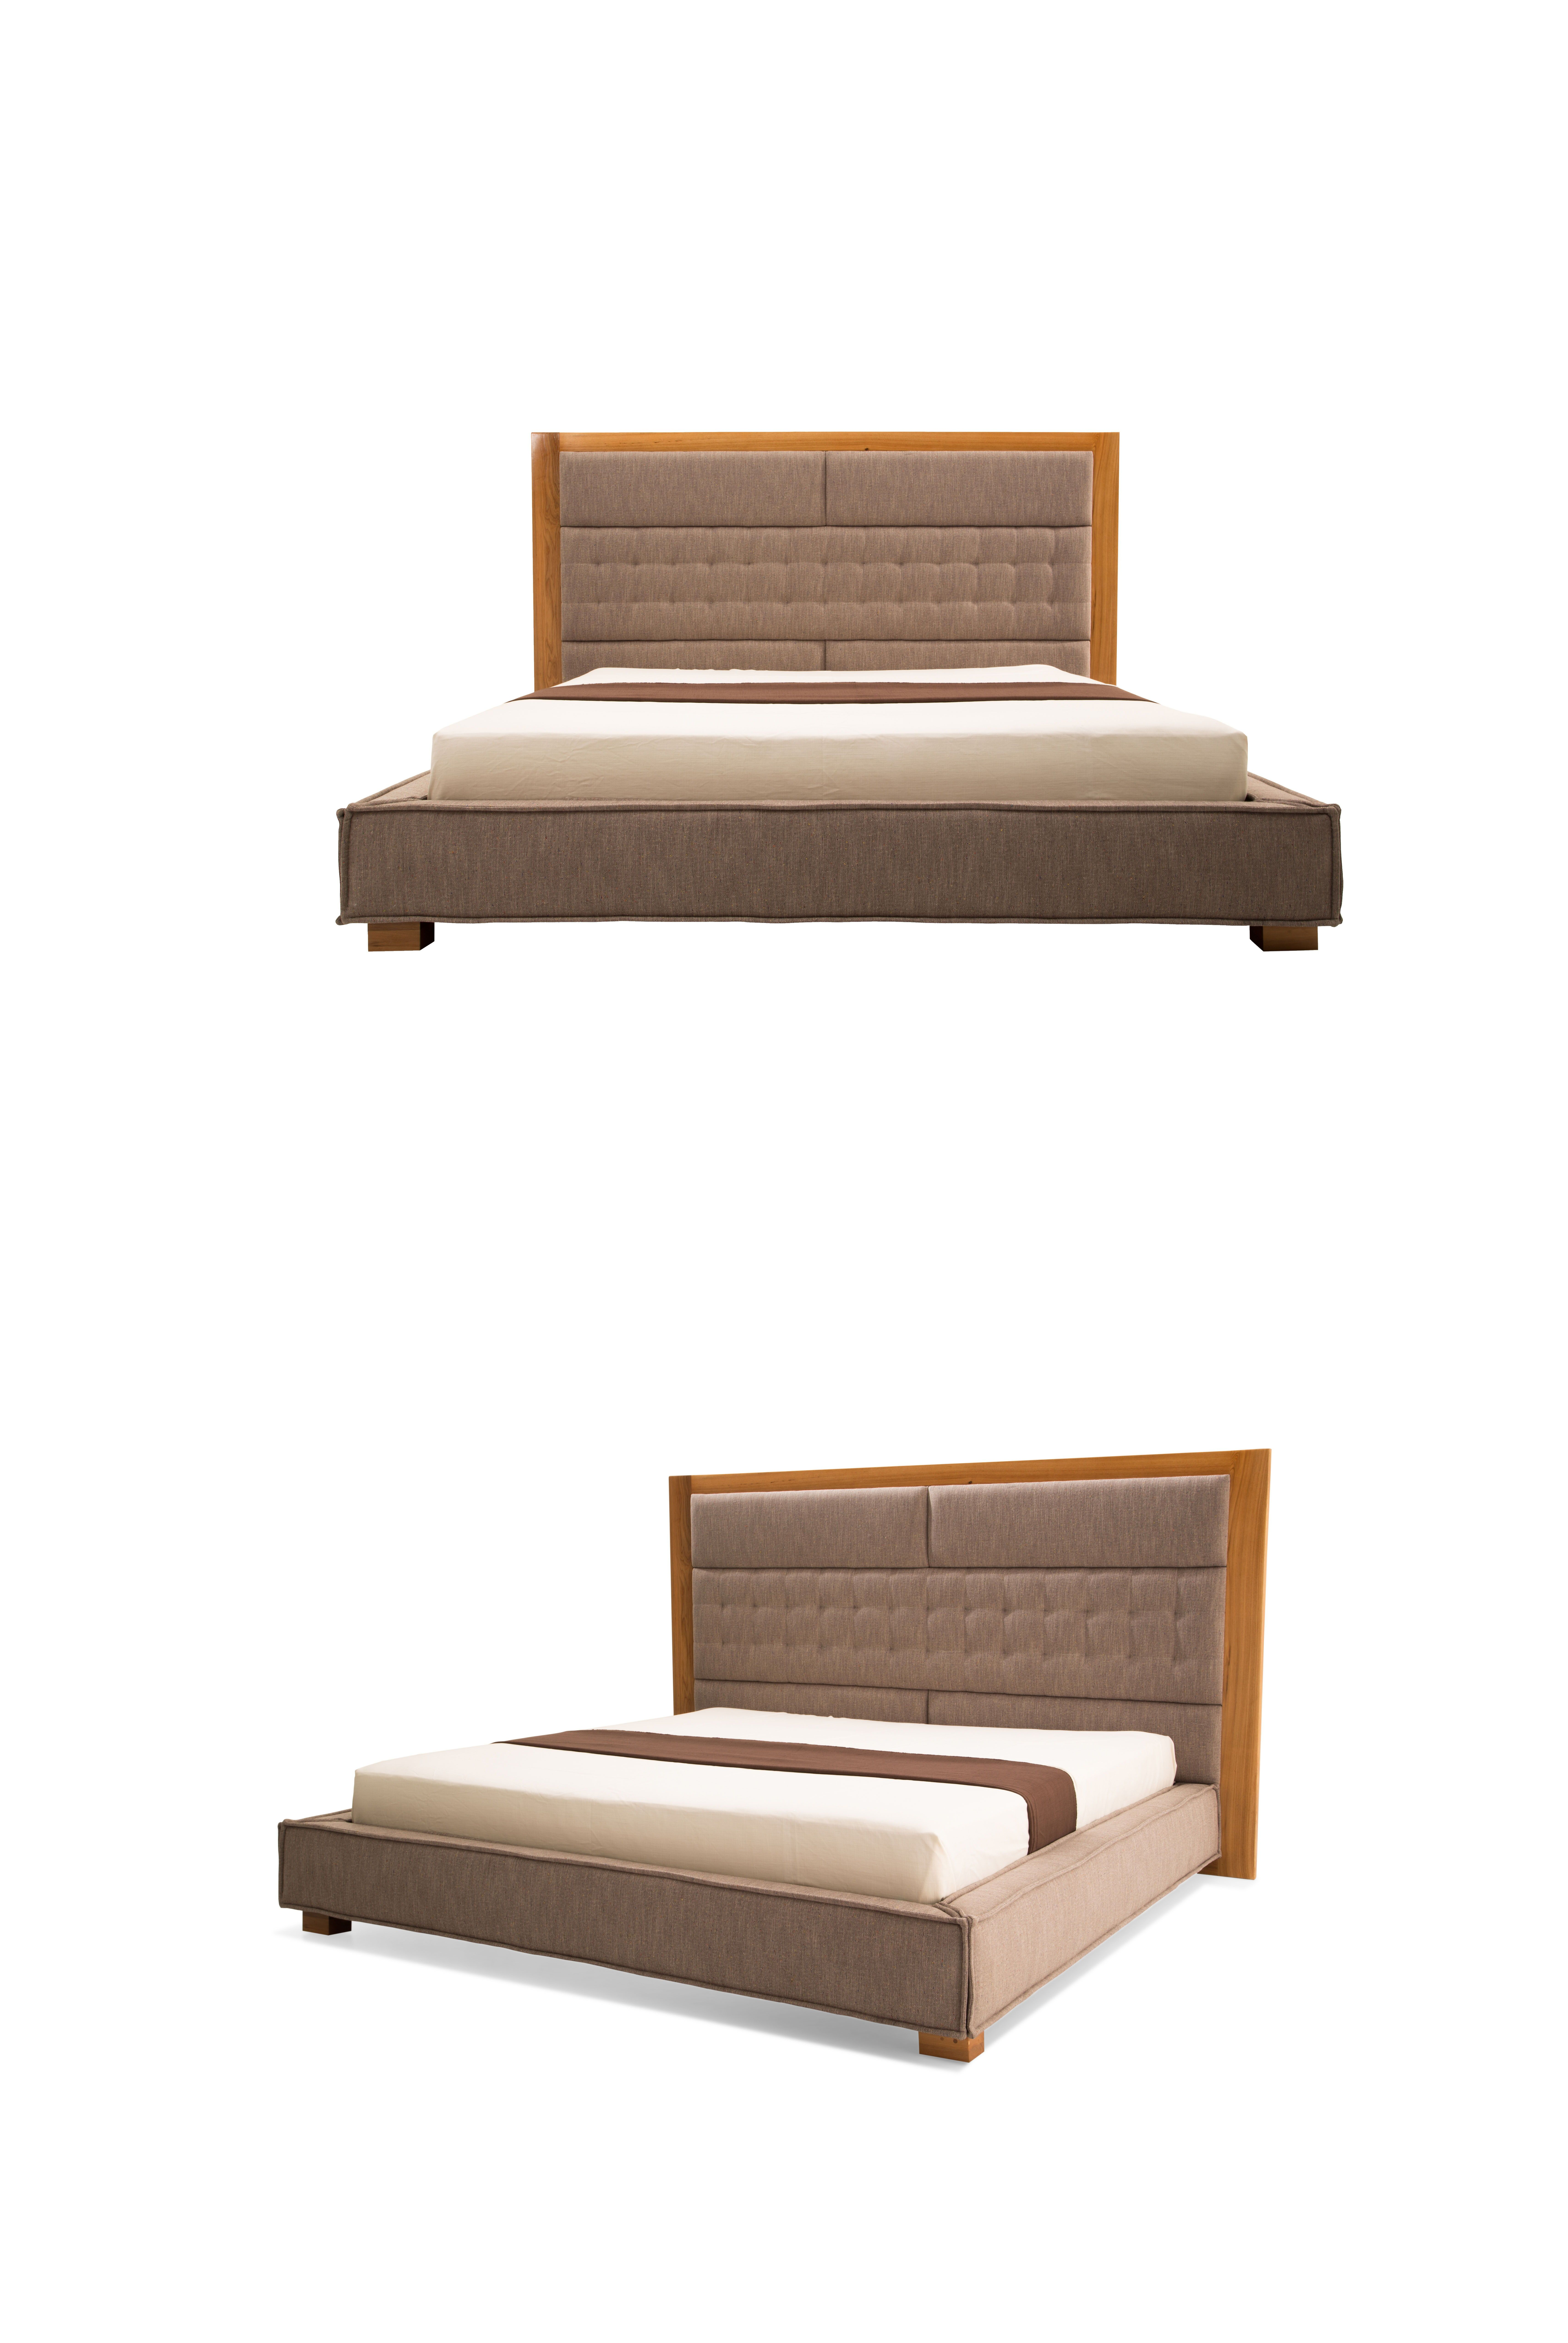 Modern Style Bed Brown W2005 D2230 H1445 Solid Wood Frame E1